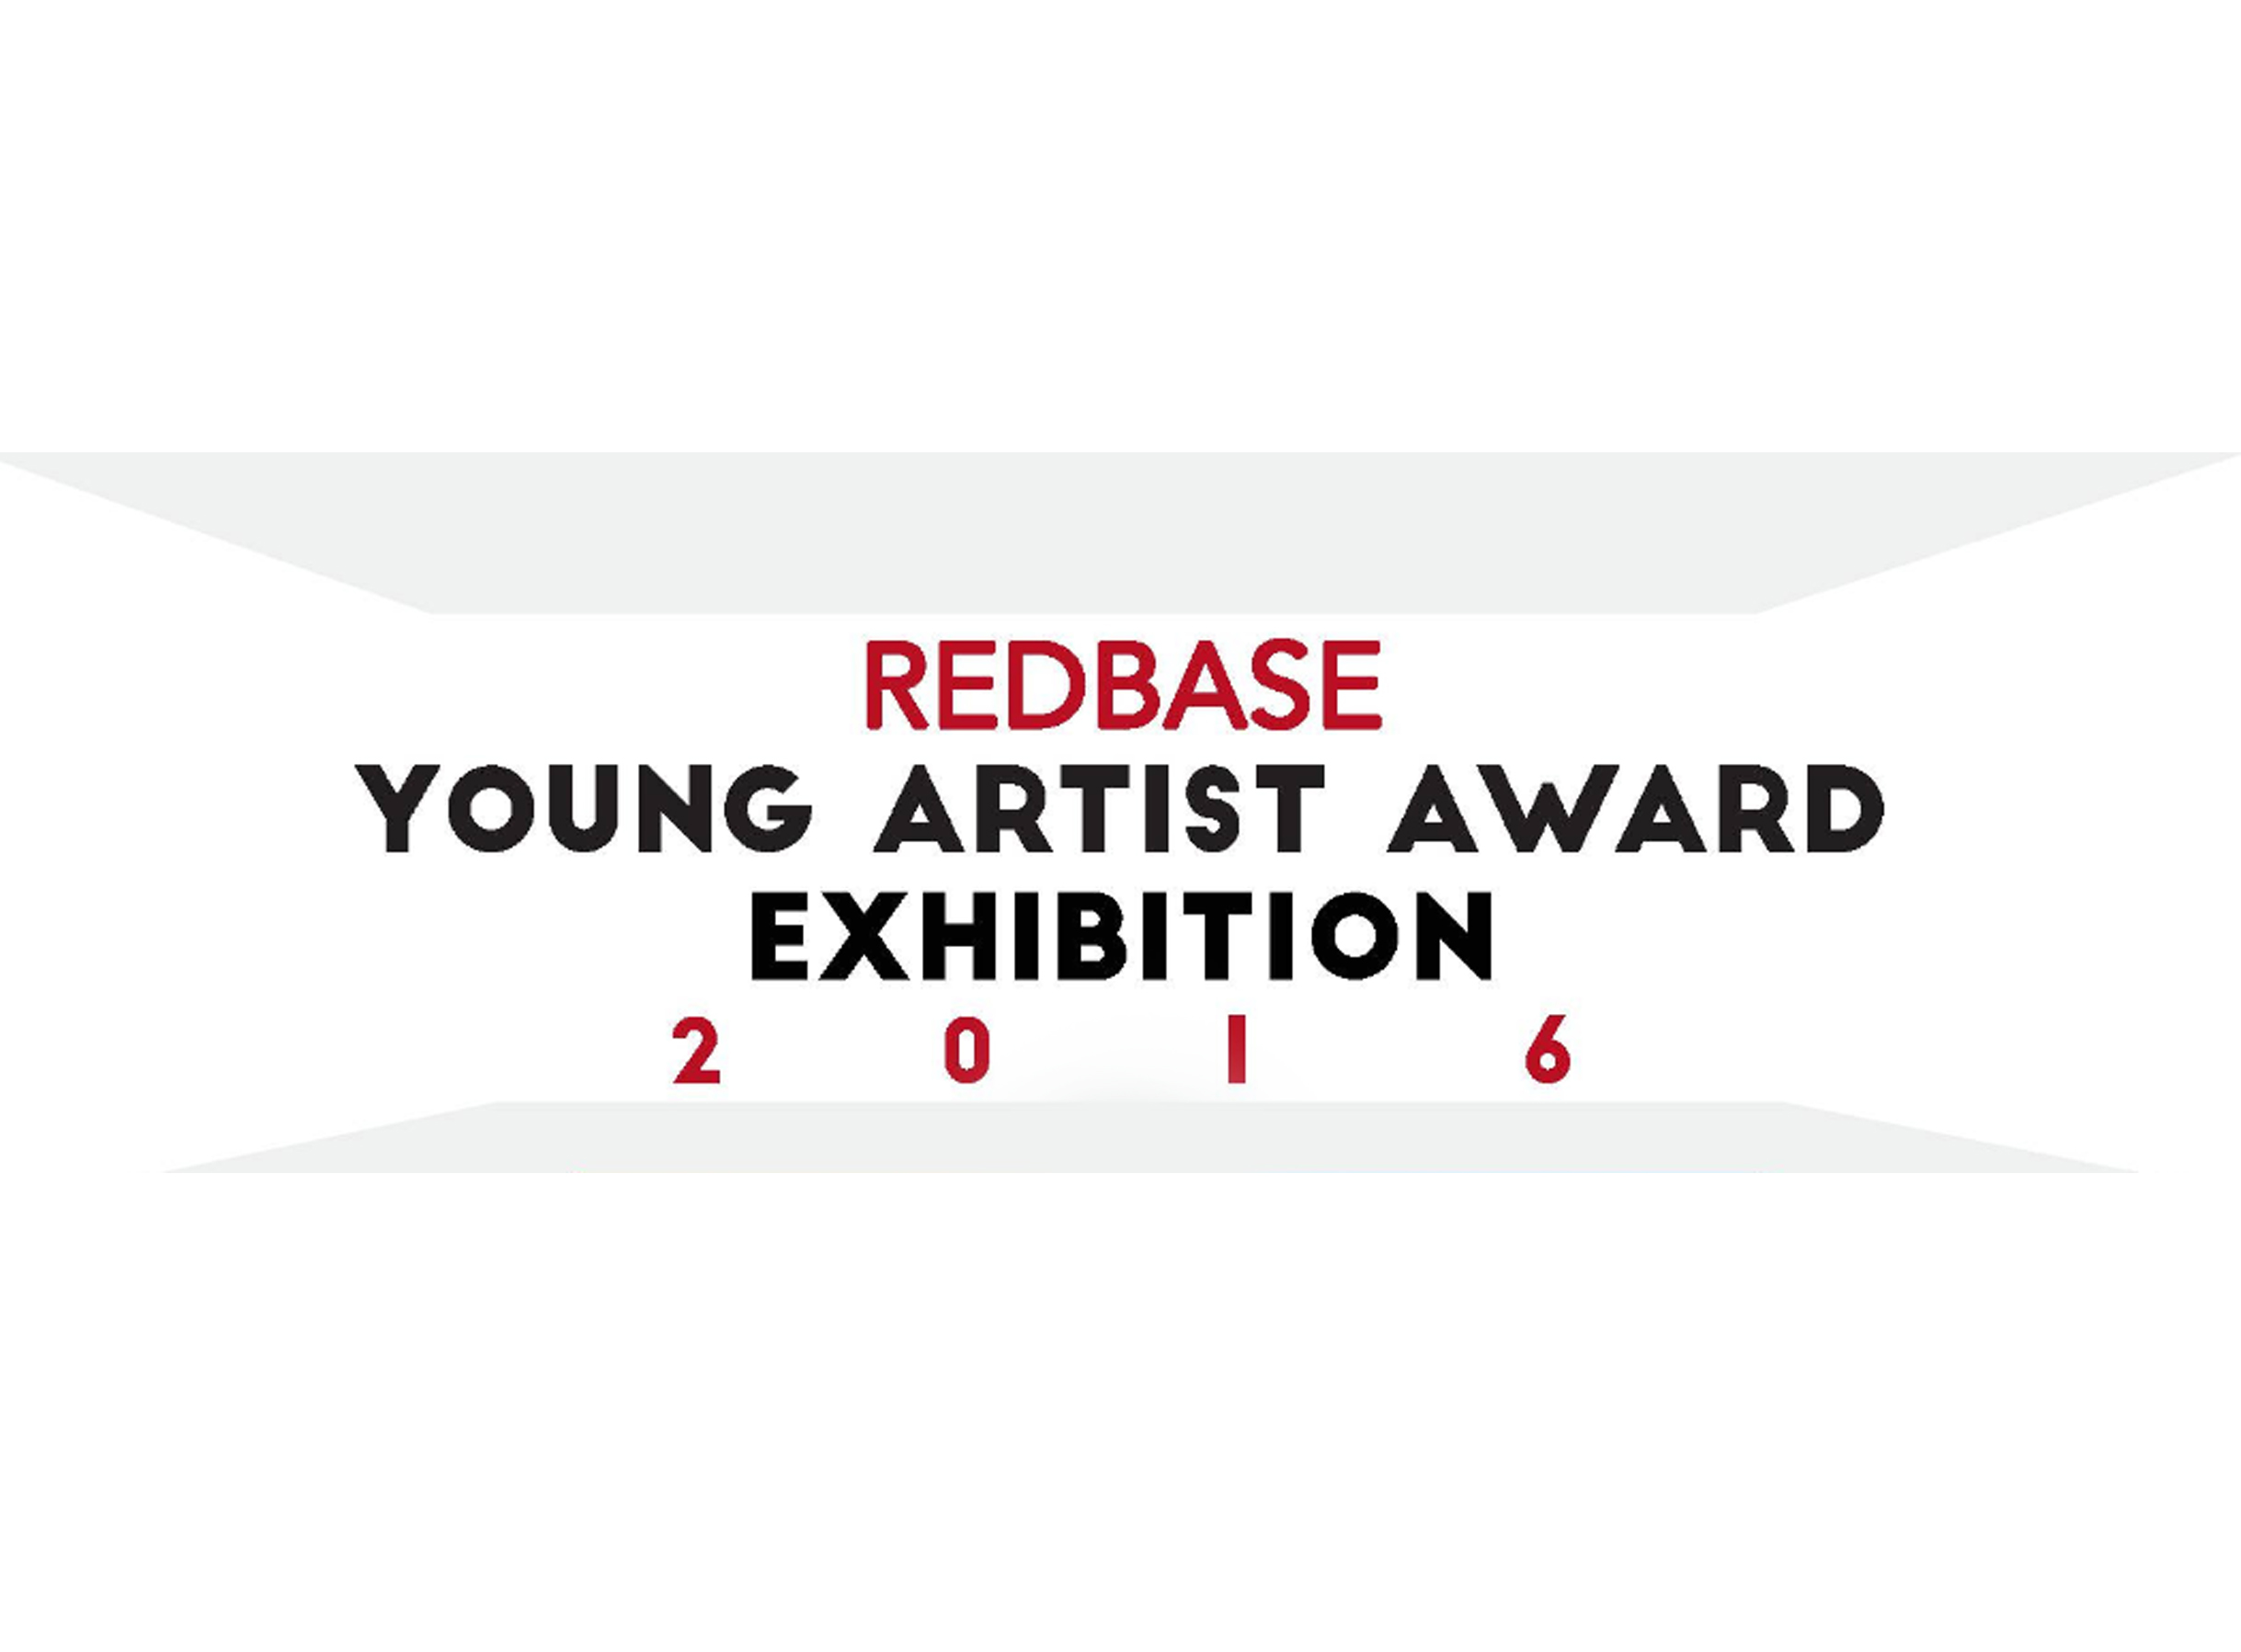 INTERVIEW: Prize Winners of REDBASE Young Artist Award 2016